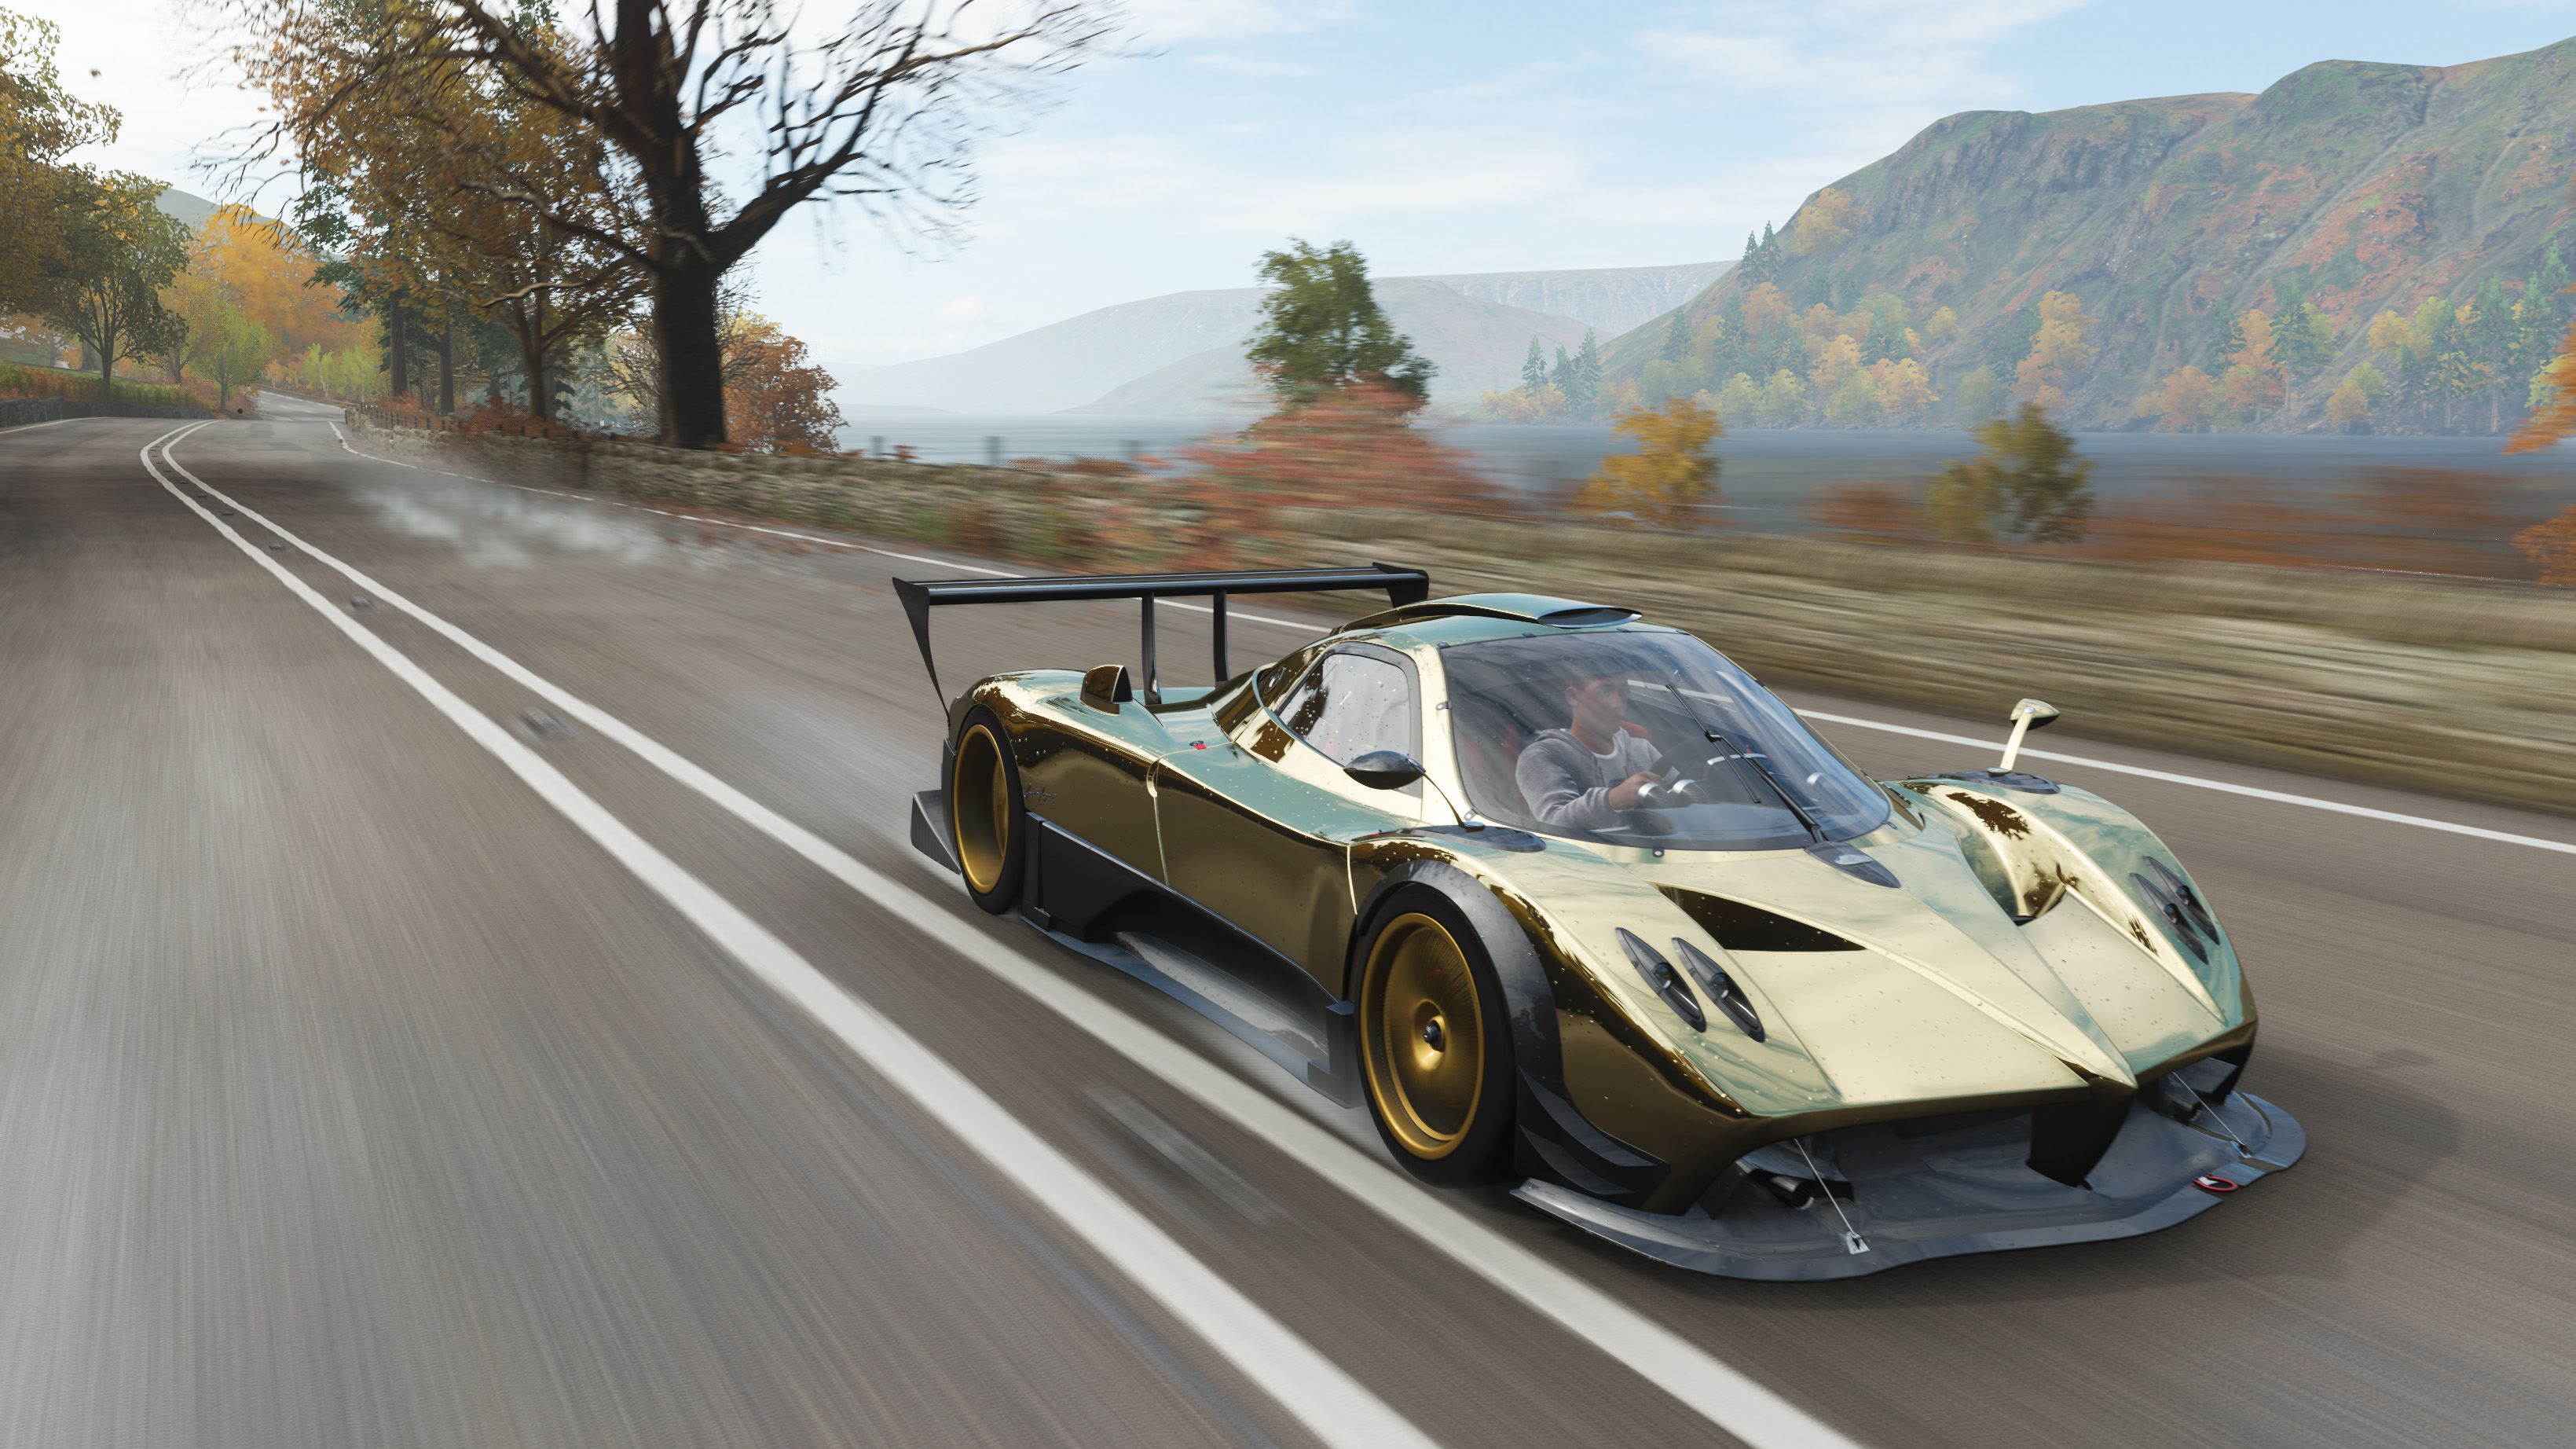 forza horizon 2 gaming chair caravan oversized zero gravity 4 car list the best cars for every season and pvp